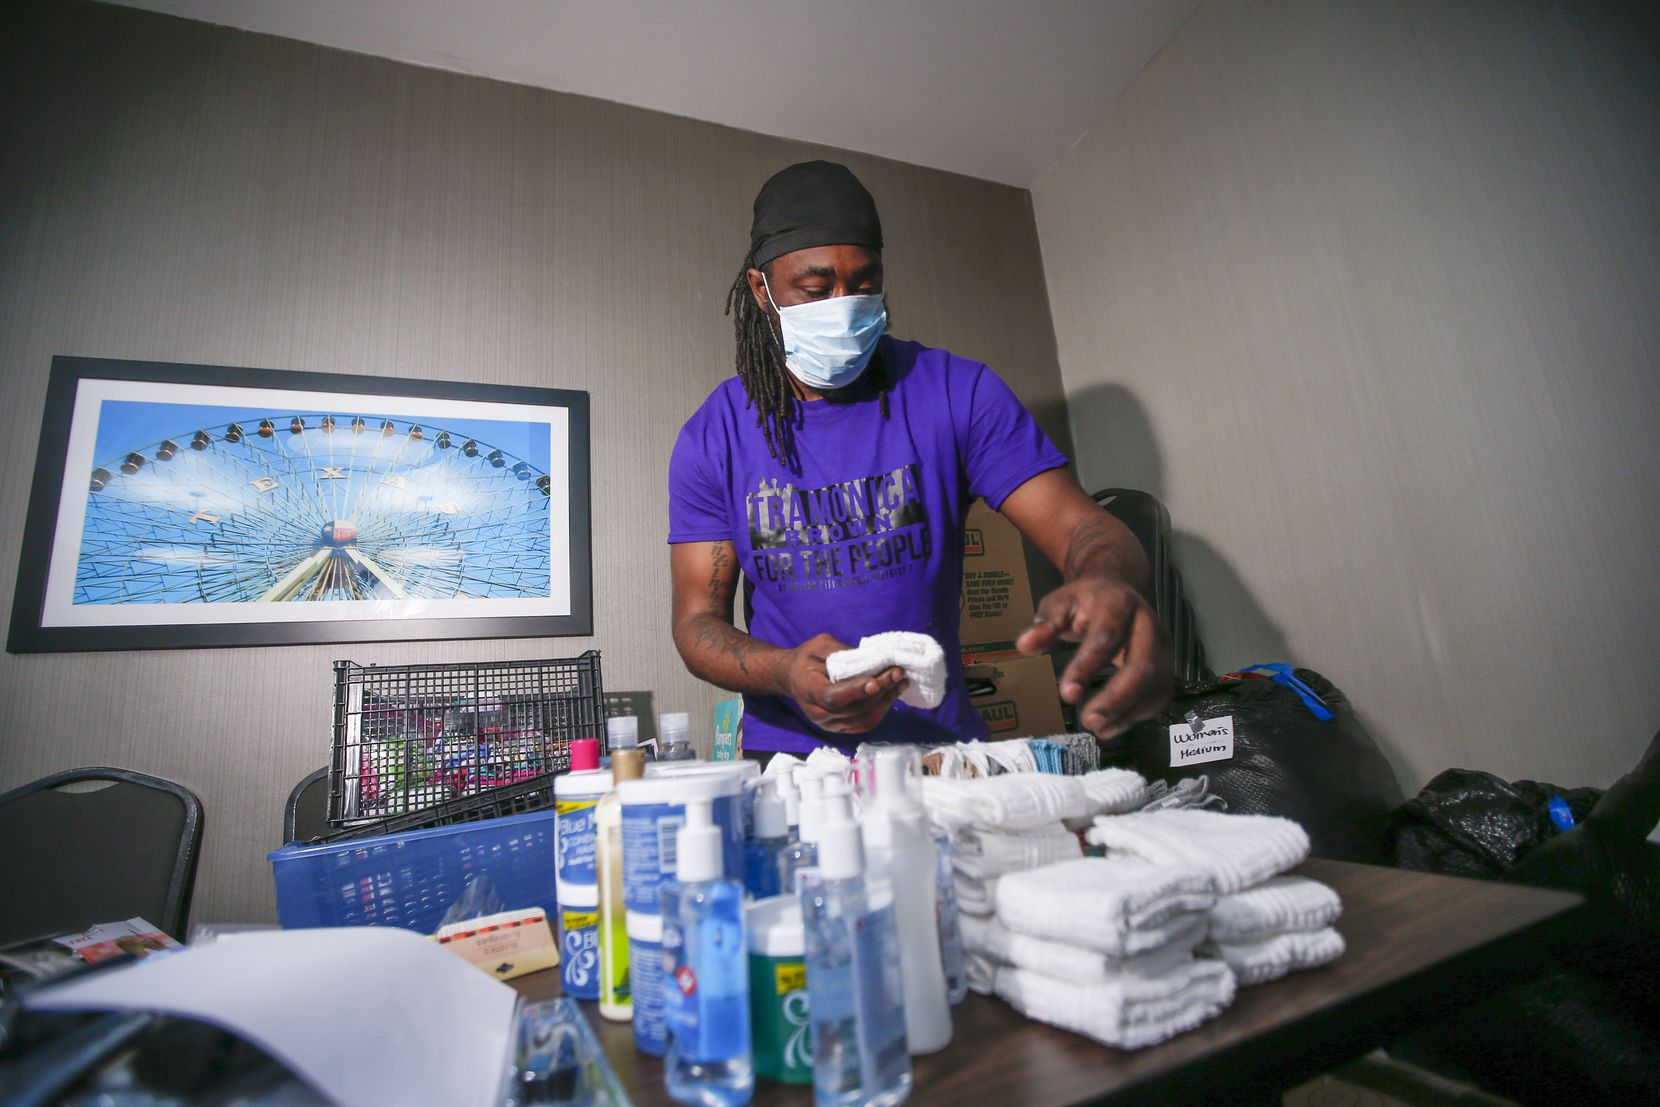 Dominique Robinson, one of the people being helped by Not My Son Dallas, does what he can to help the aid operation. Here, he sorts donated toiletries.